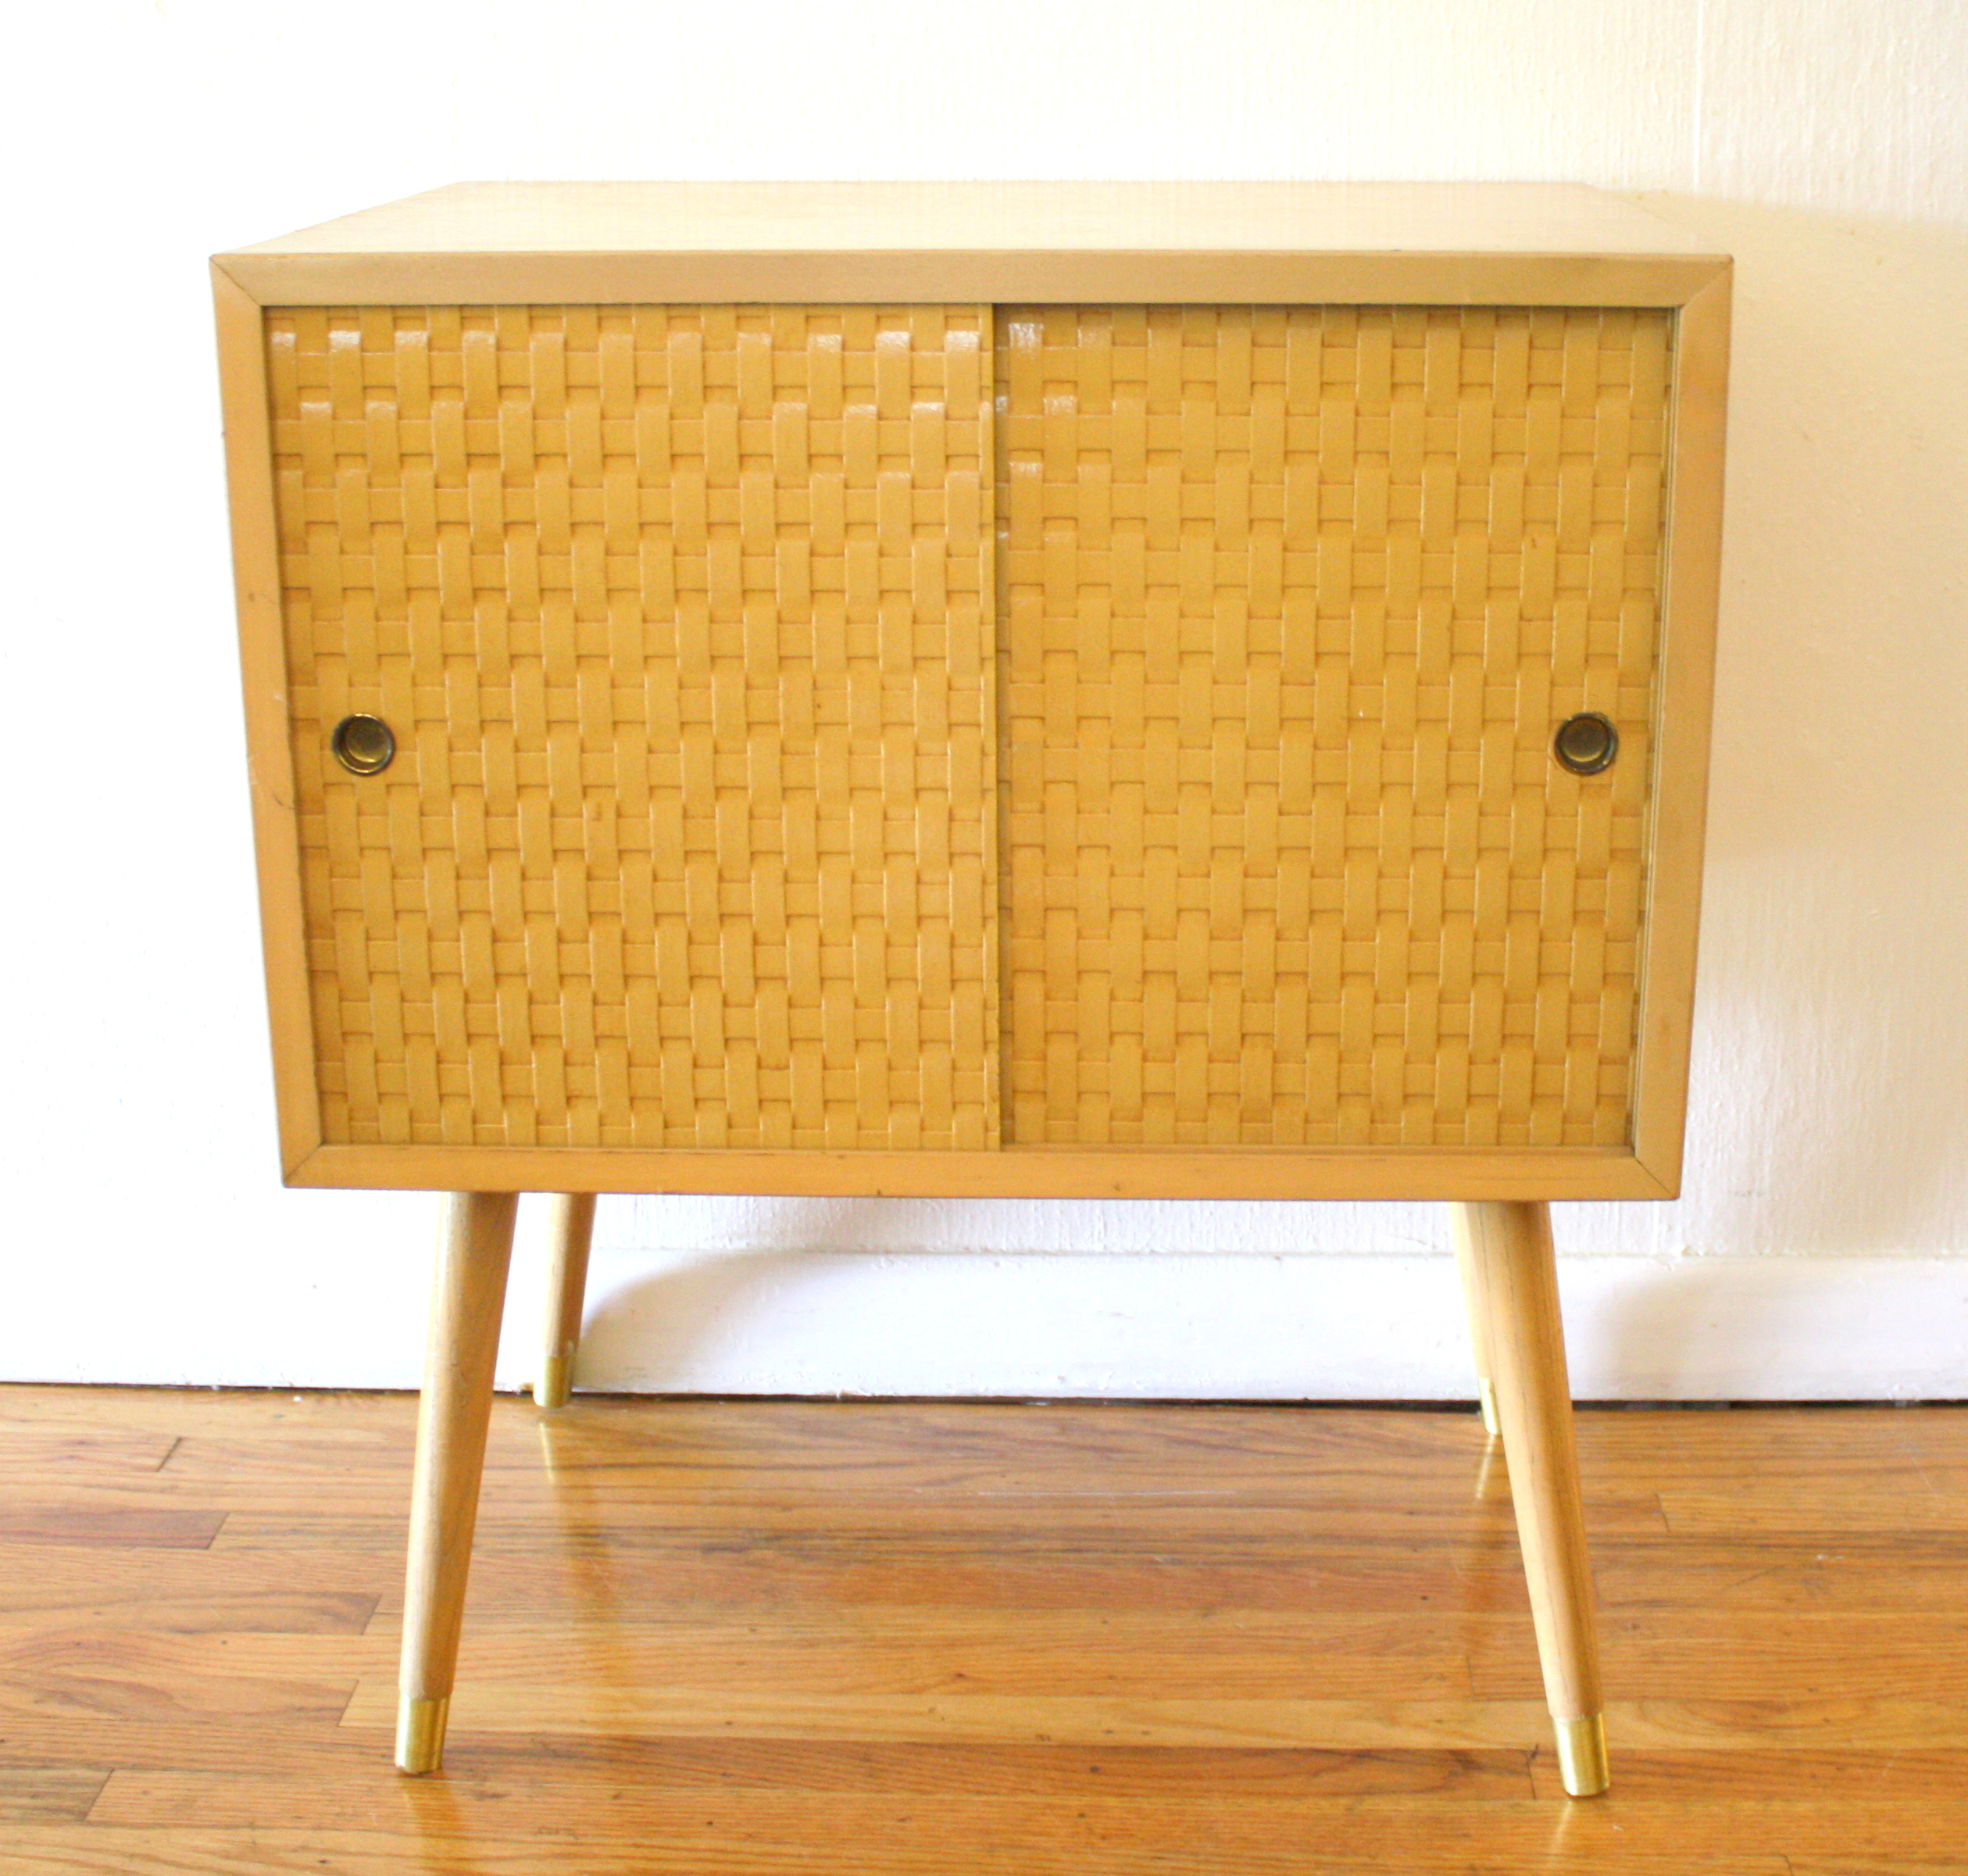 Mid Century Modern Side Table with Basket Weave Doors  : blond basket weave table1 from pickedvintage.com size 2519 x 2401 jpeg 2511kB